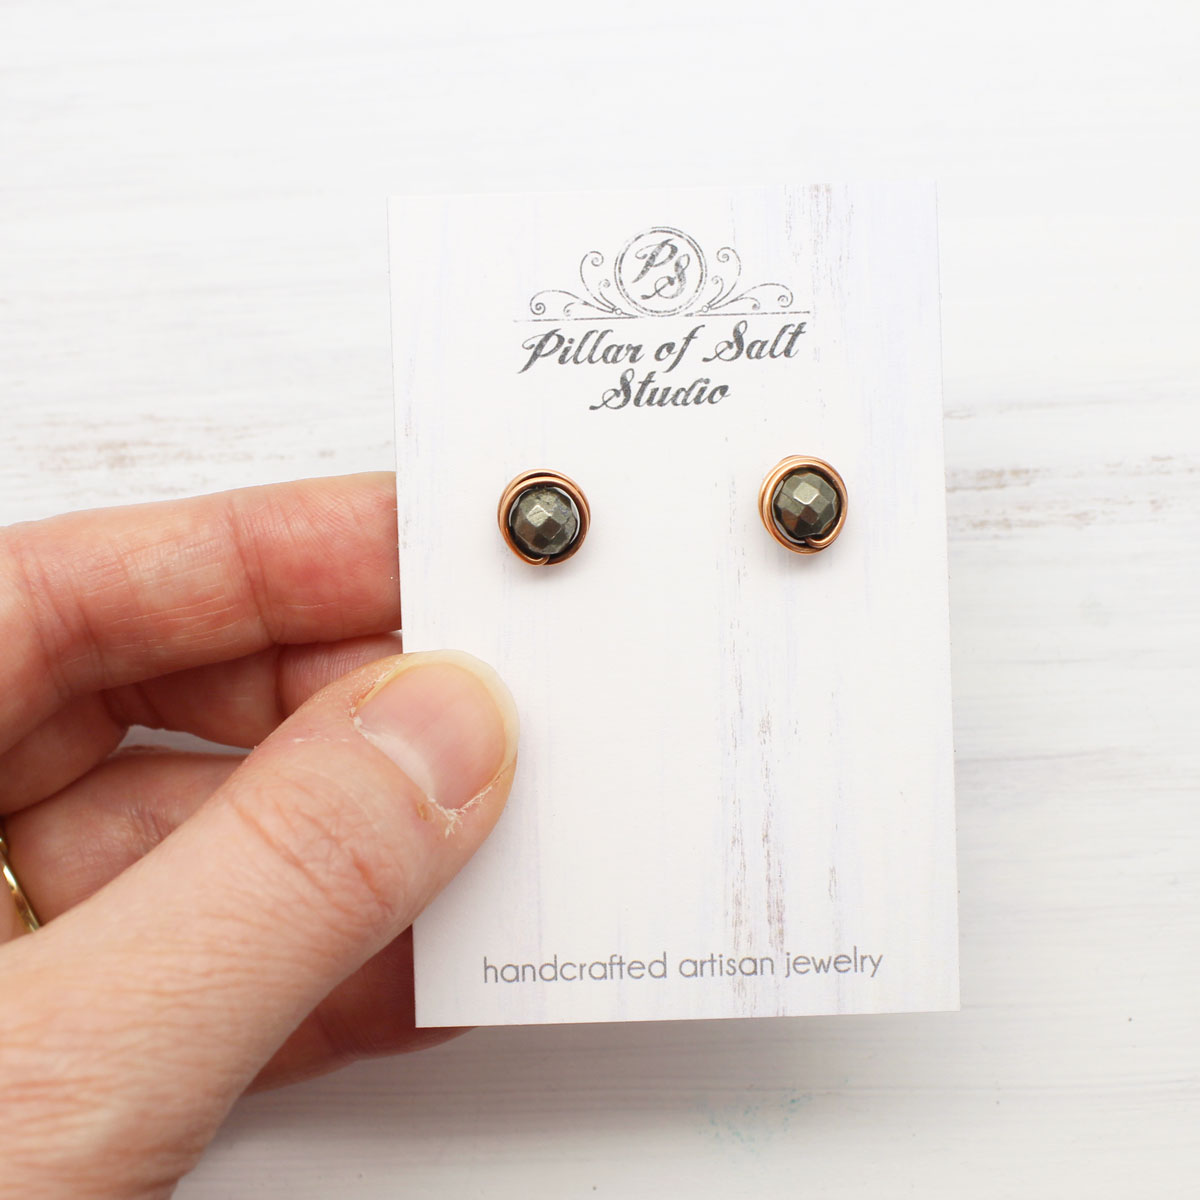 small pyrite copper stud earrings by Pillar of Salt Studio